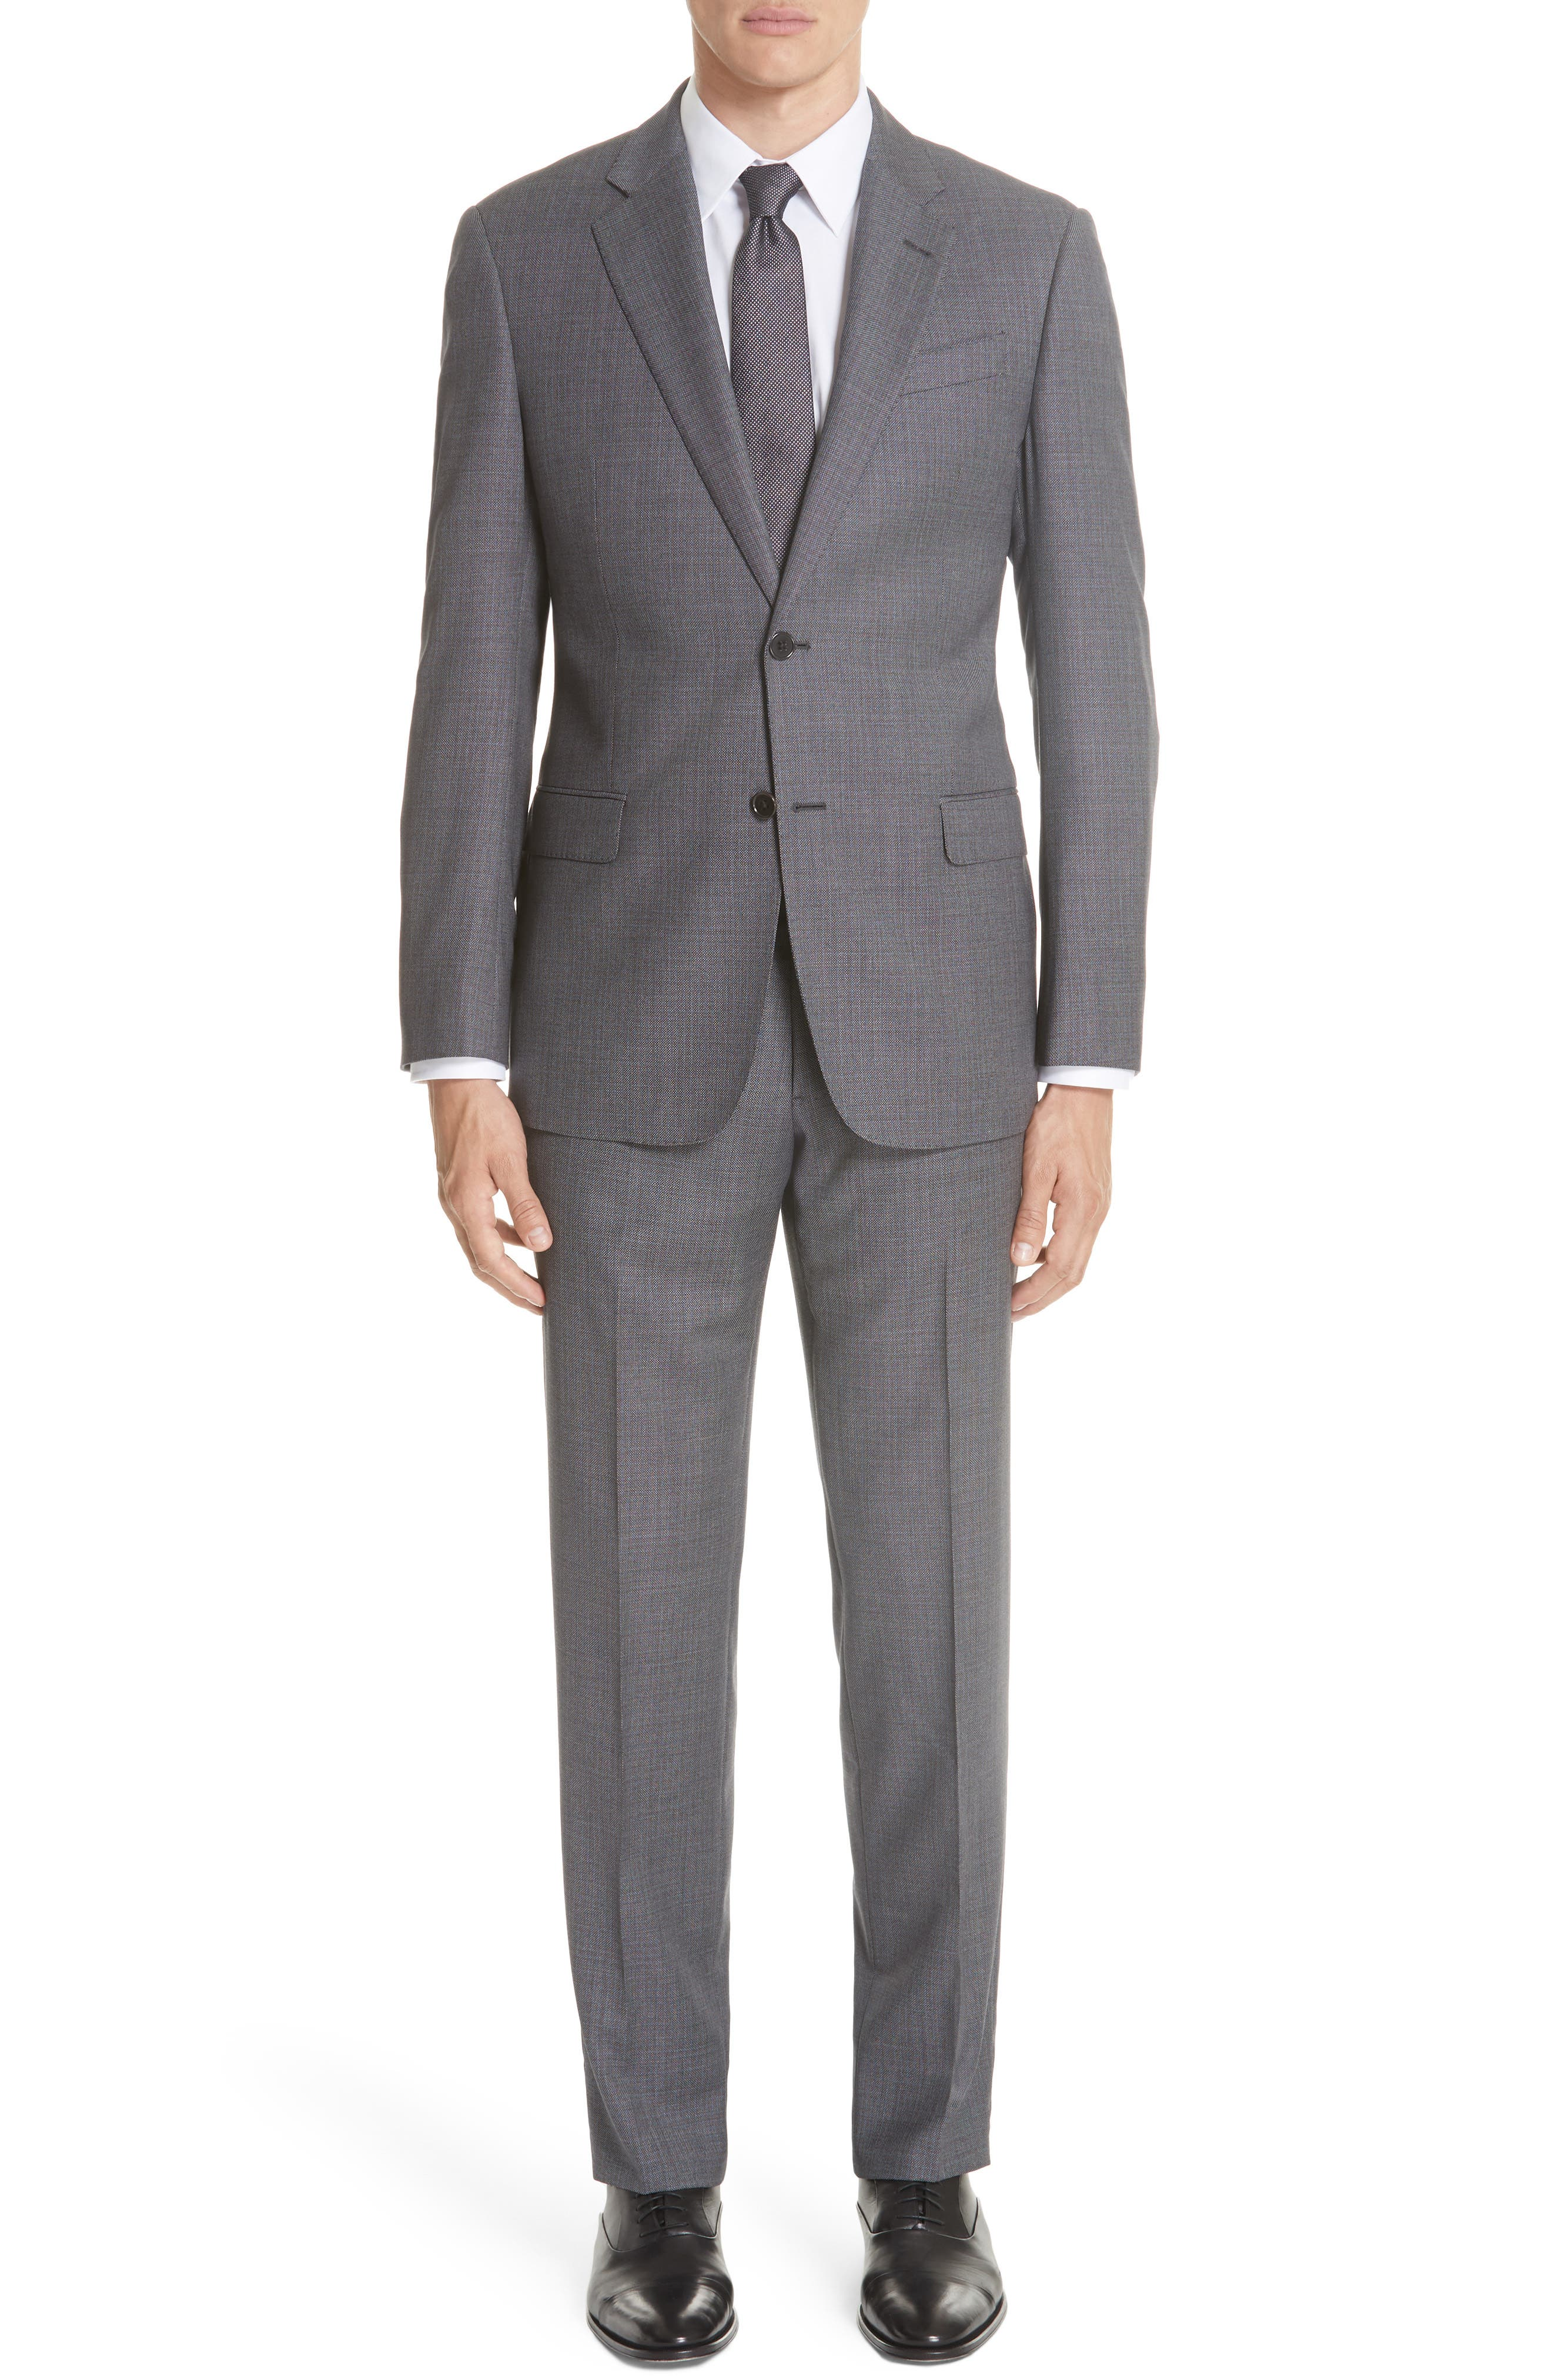 G-Line Trim Fit Bird's Eye Wool Suit,                             Main thumbnail 1, color,                             GREY/ LIGHT BLUE